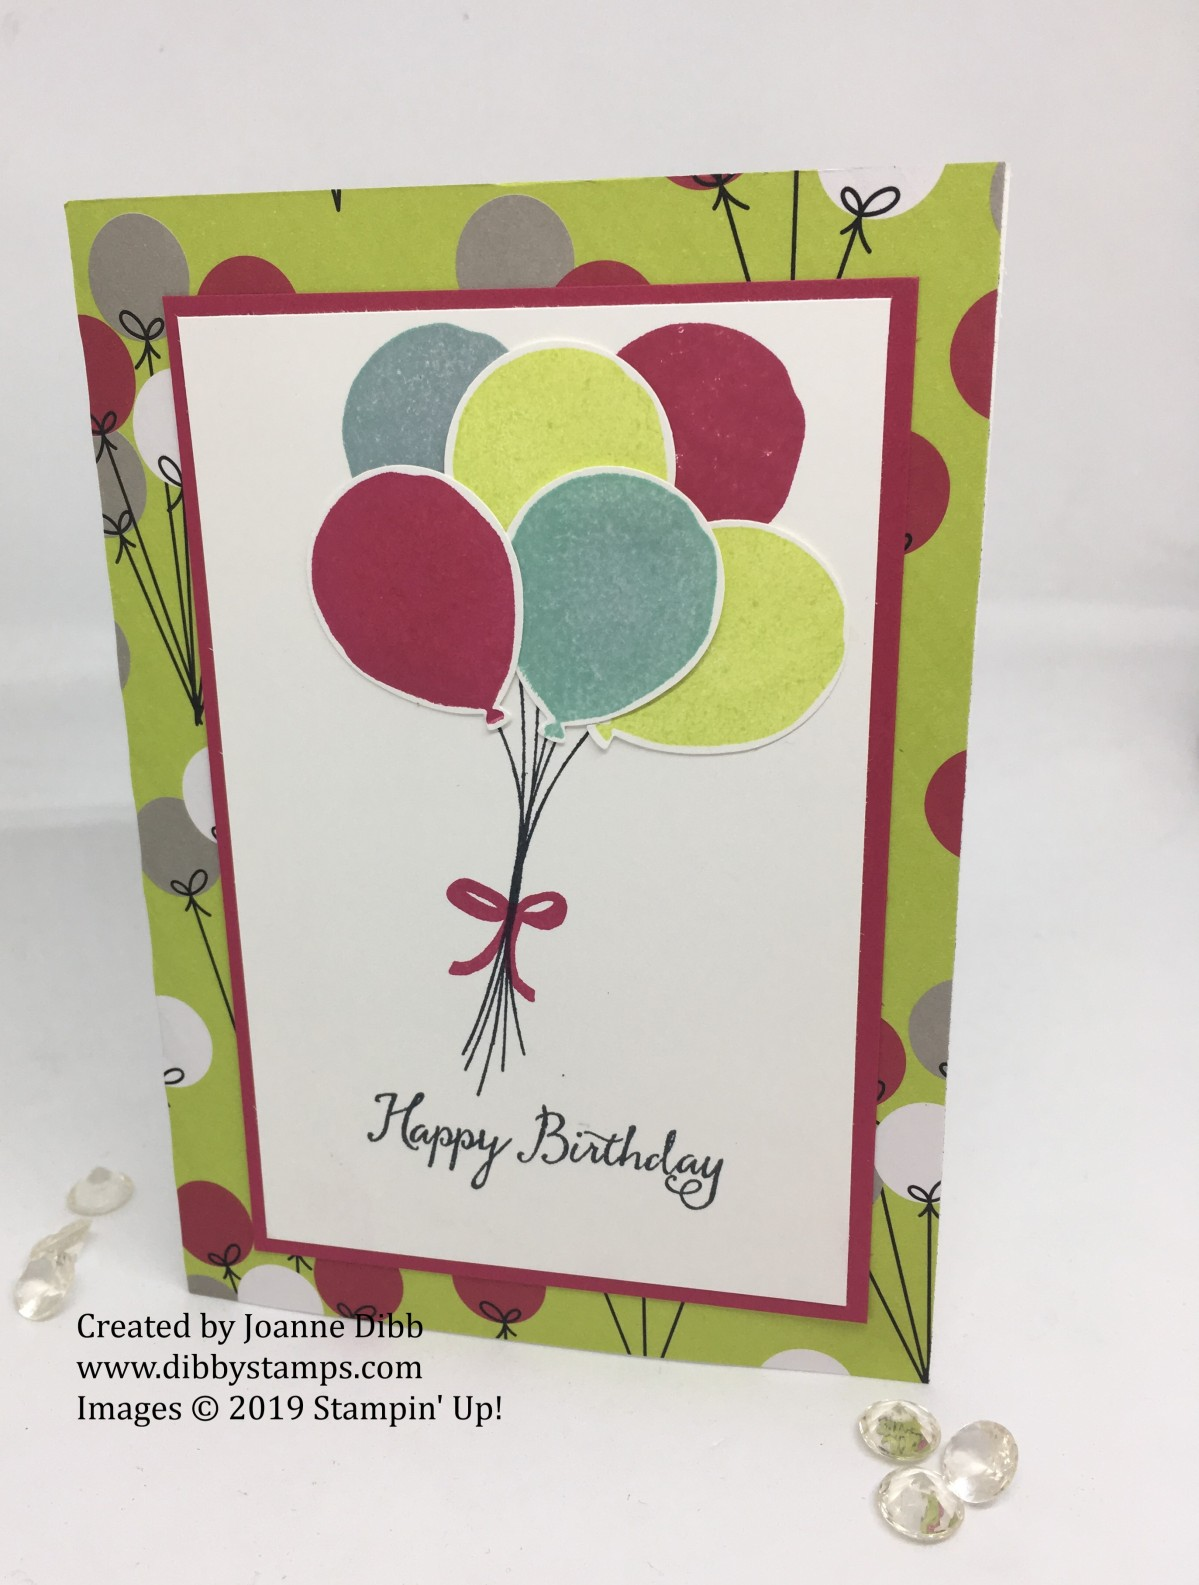 Balloon Celebration Birthday Card